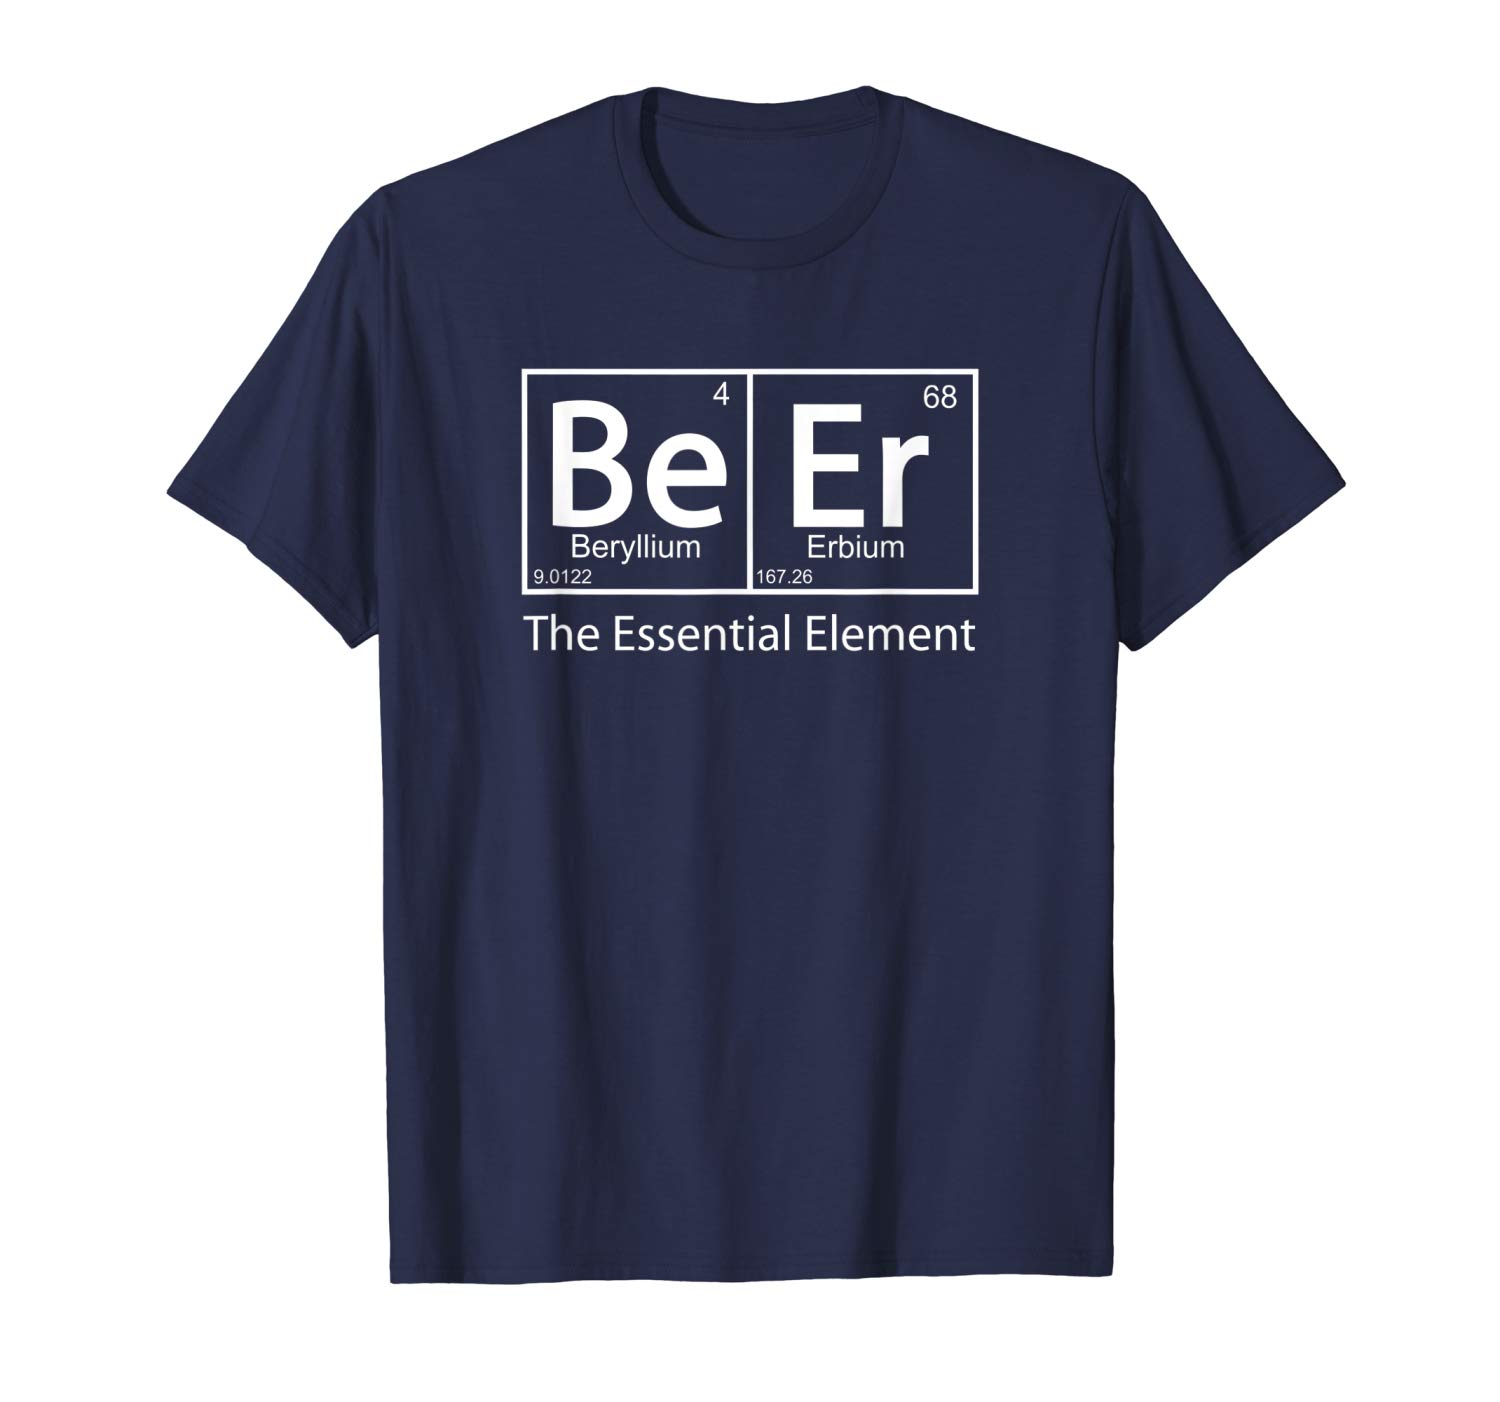 Beer The Essential Element - the original BrewerShirts classic homebrewing beer geek T-Shirt